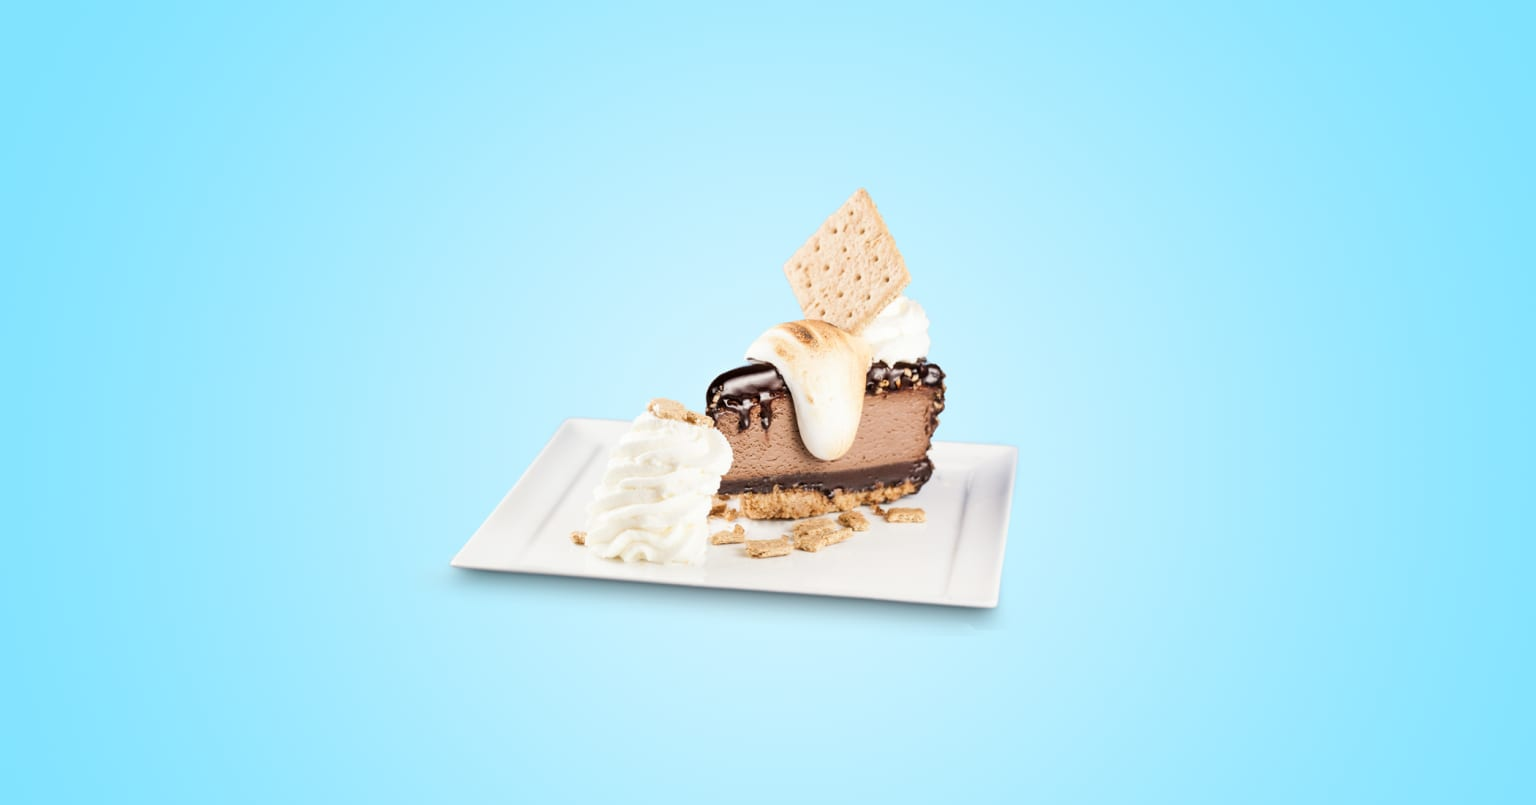 The Cheesecake Factory Photography